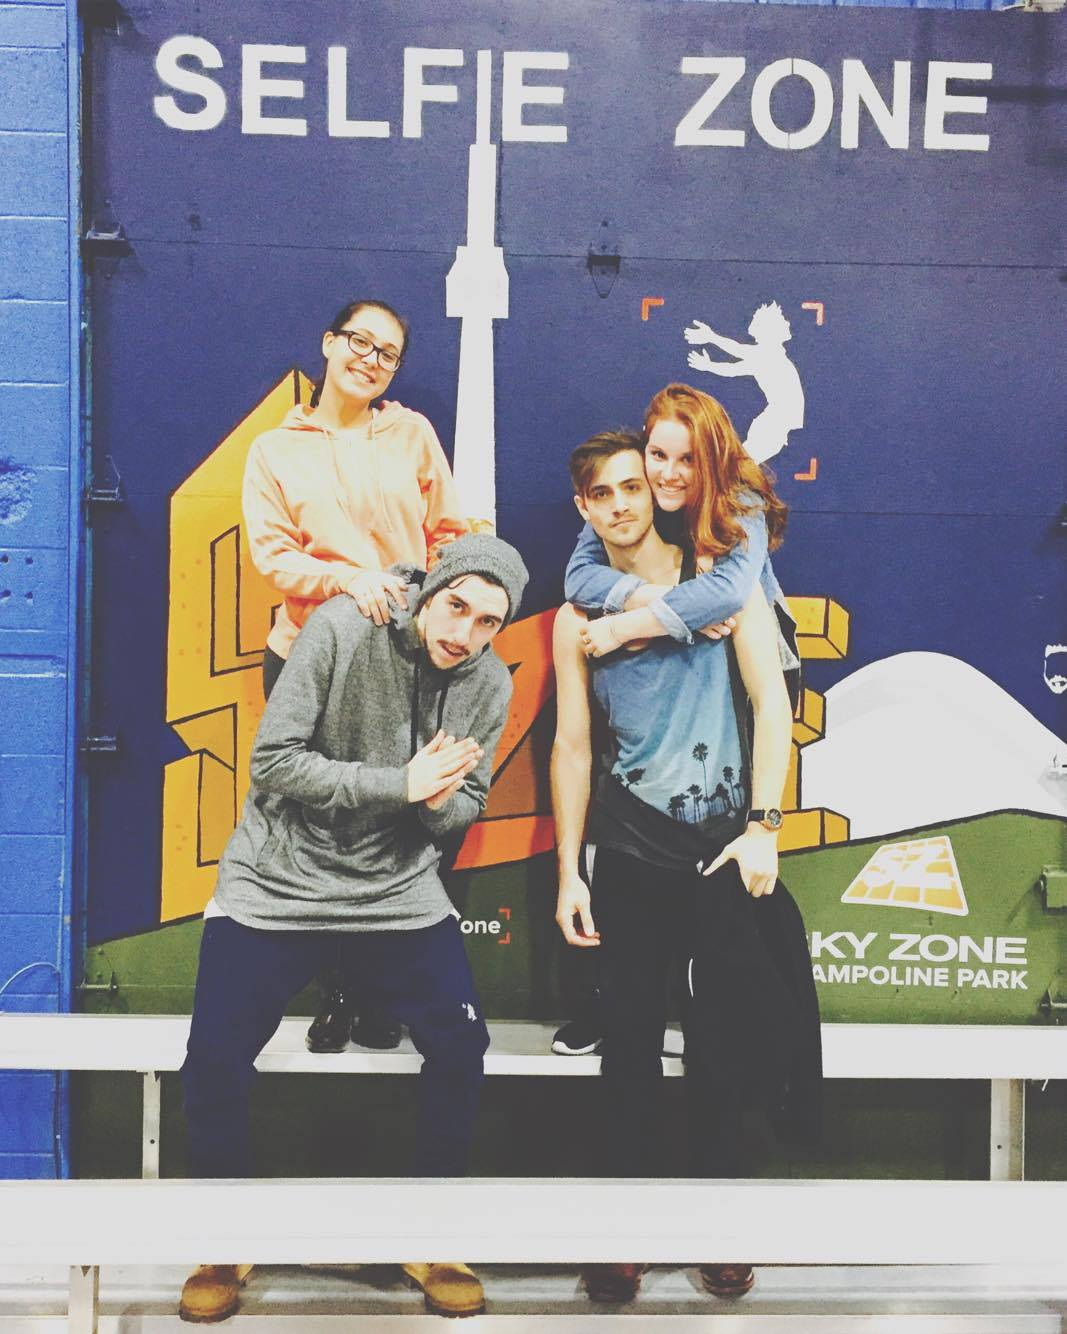 Madeline and 3 friends posing on a bench with a toronto themed background to commemorate the trampoline experience.